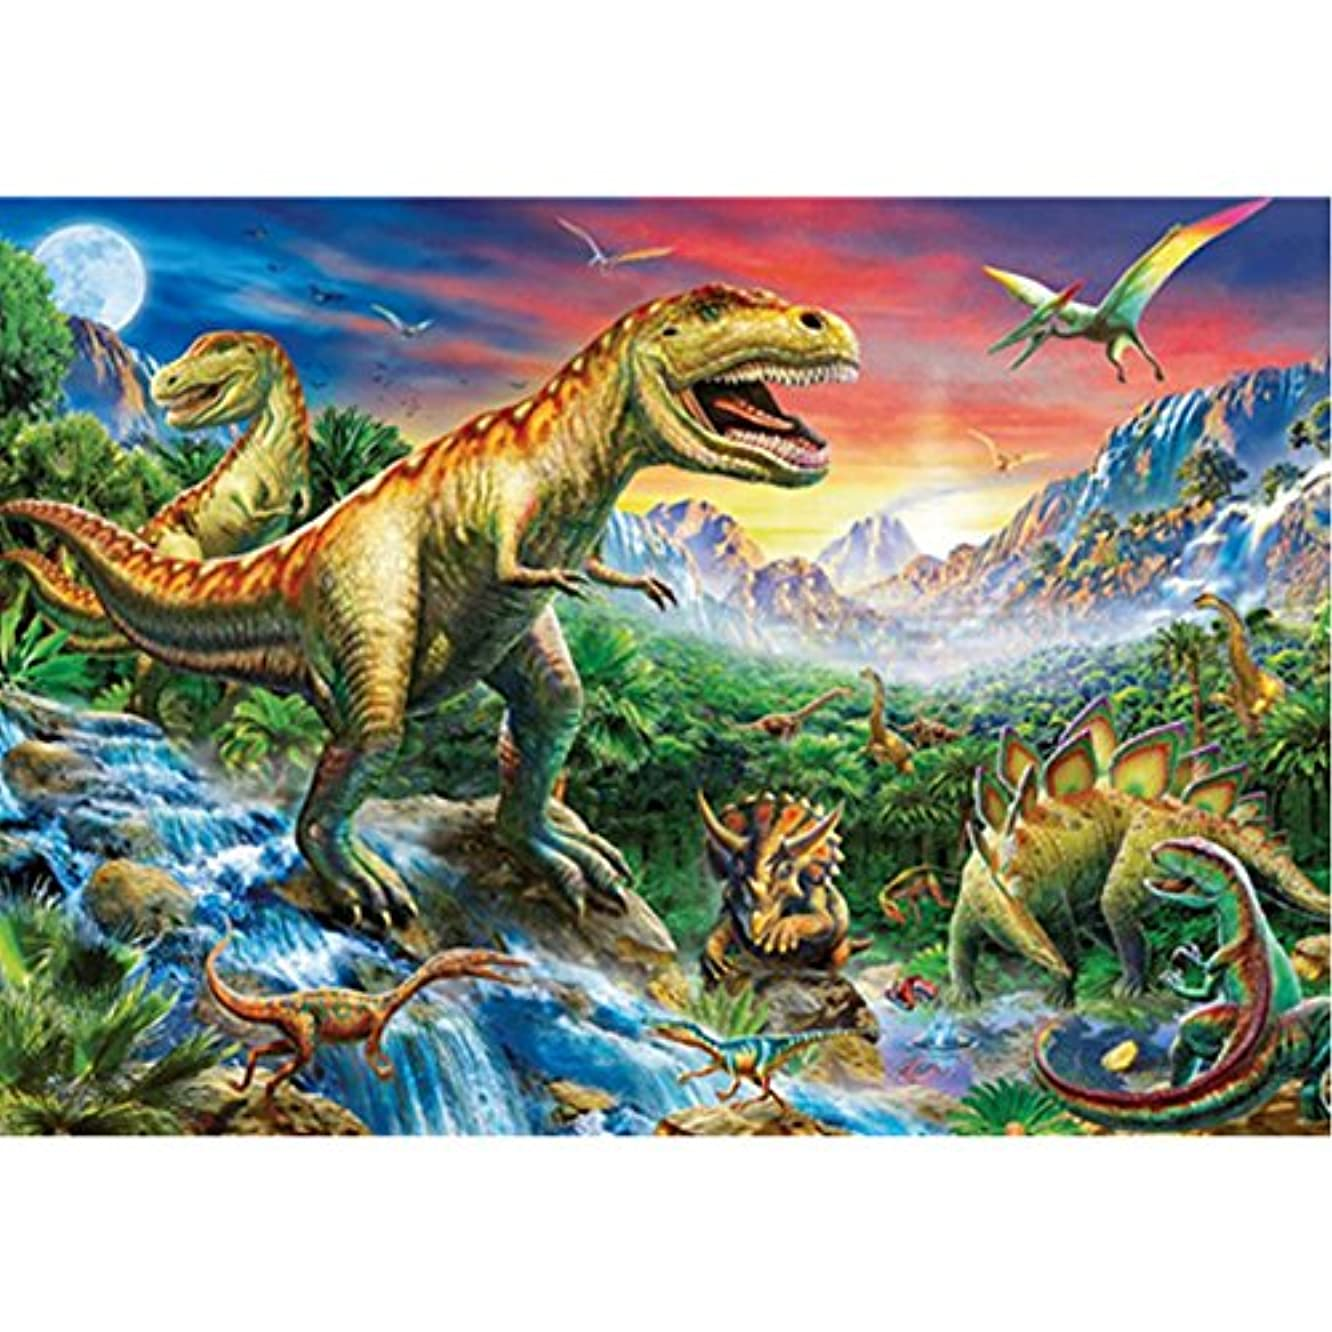 Farsla Dinosaur 5d DIY Round Diamond Painting by Number Kits Animal Picture Kids Love Paint Diamond Embroidery Kits Mosaic Painting for Wall Decor 12X16inch